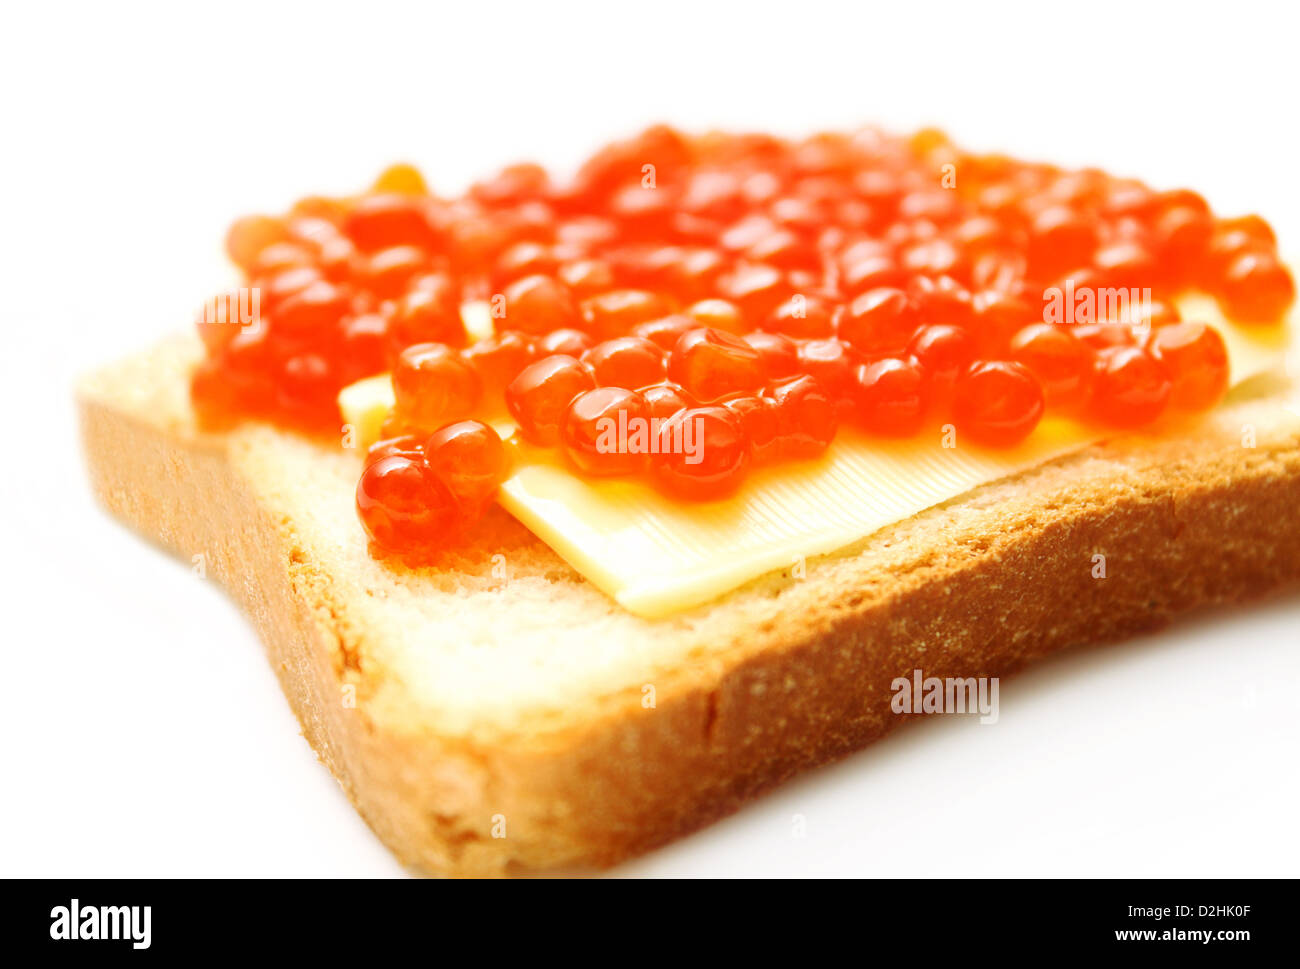 Closeup of red caviar sandwich on white background - Stock Image